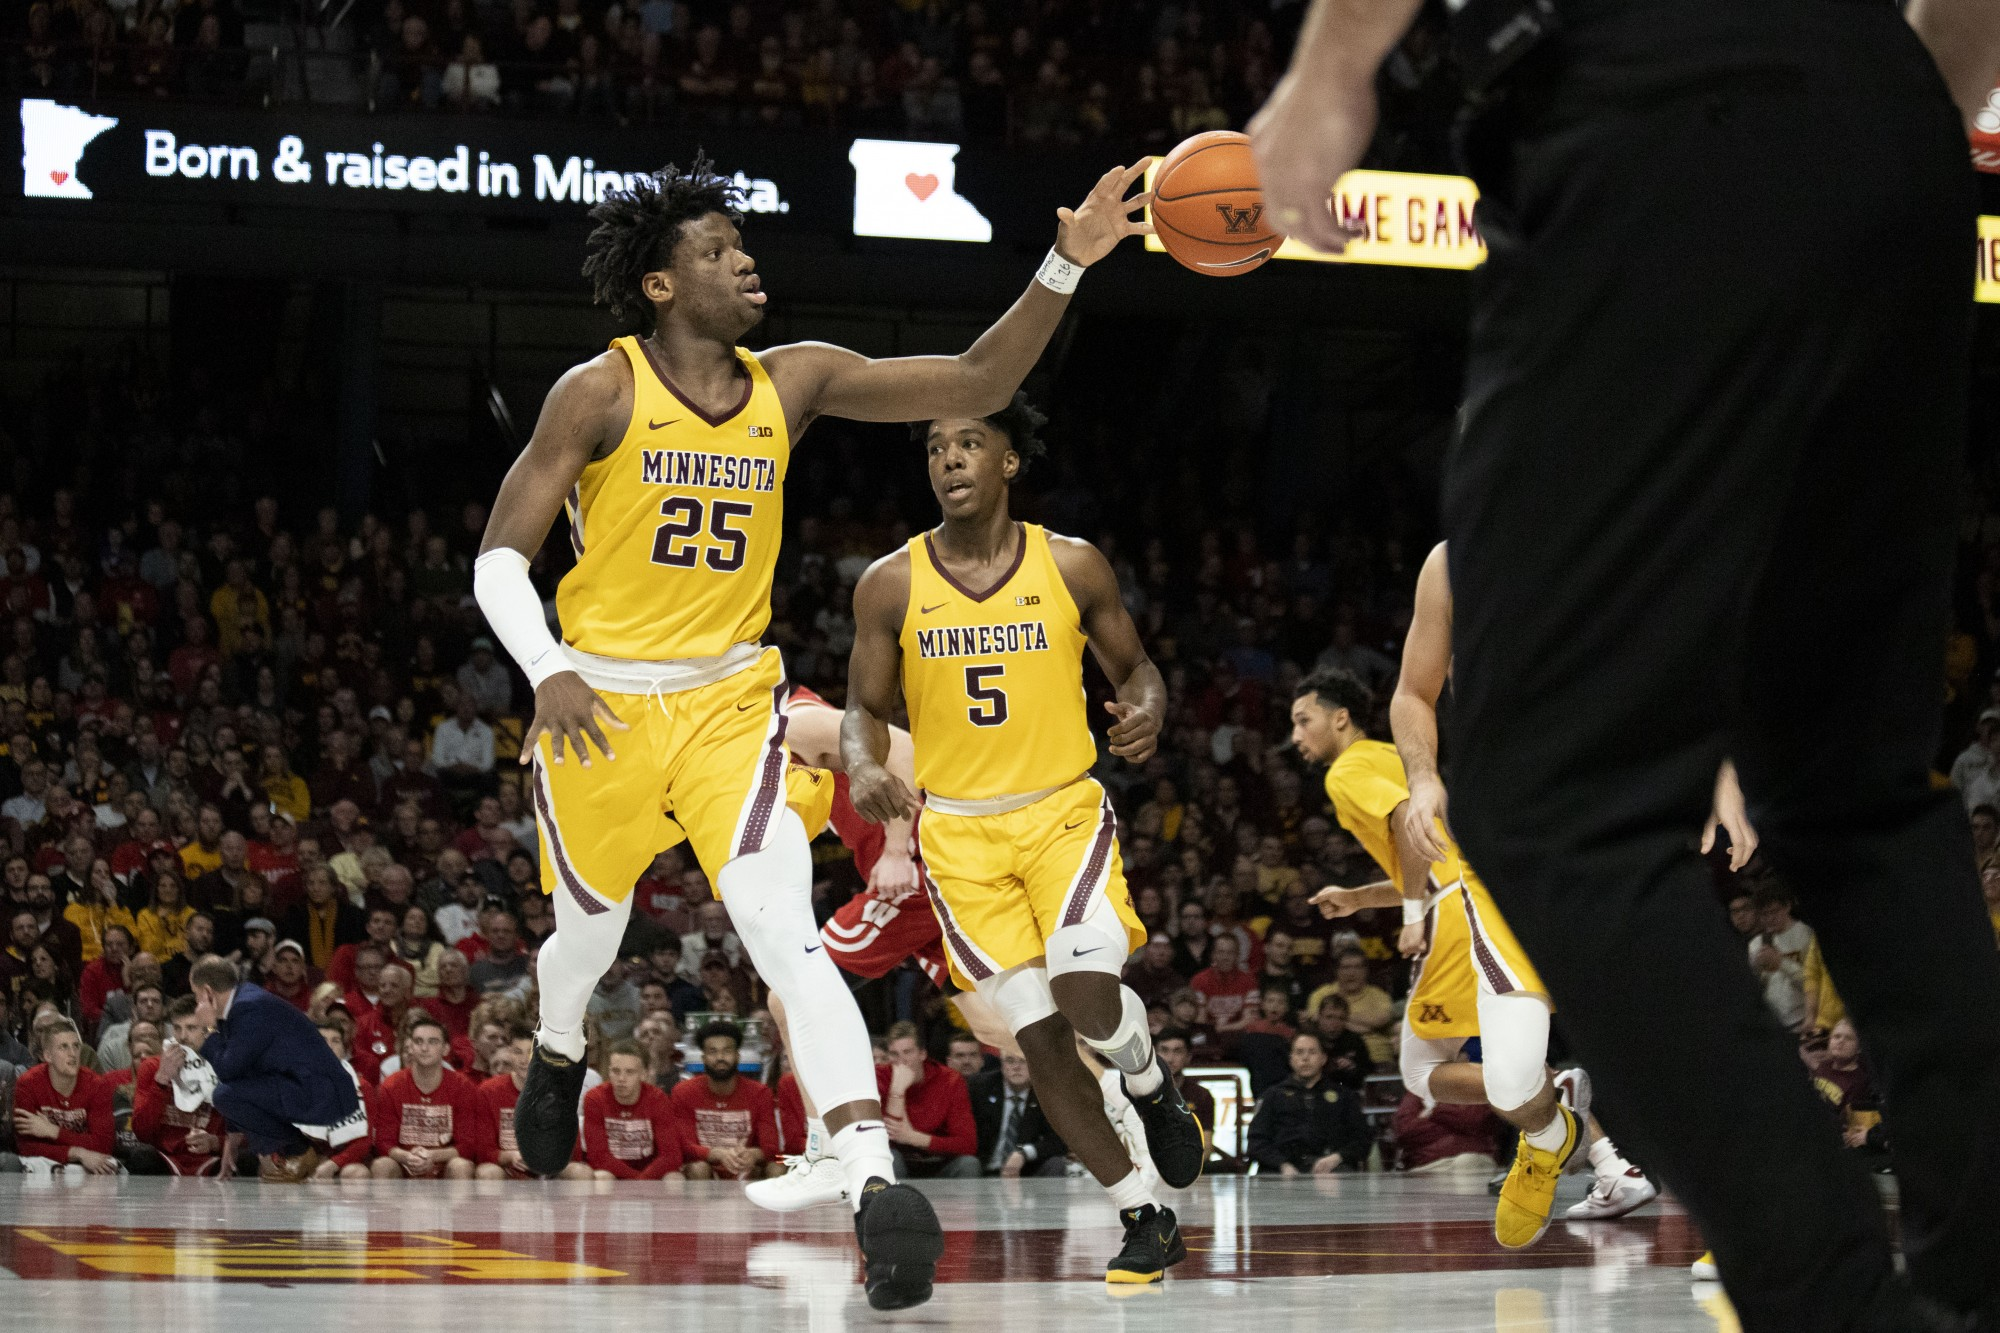 Center Daniel Oturu receives a pass at Williams Arena on Wednesday, Feb. 5. The Gophers beat the Badgers 70-52.